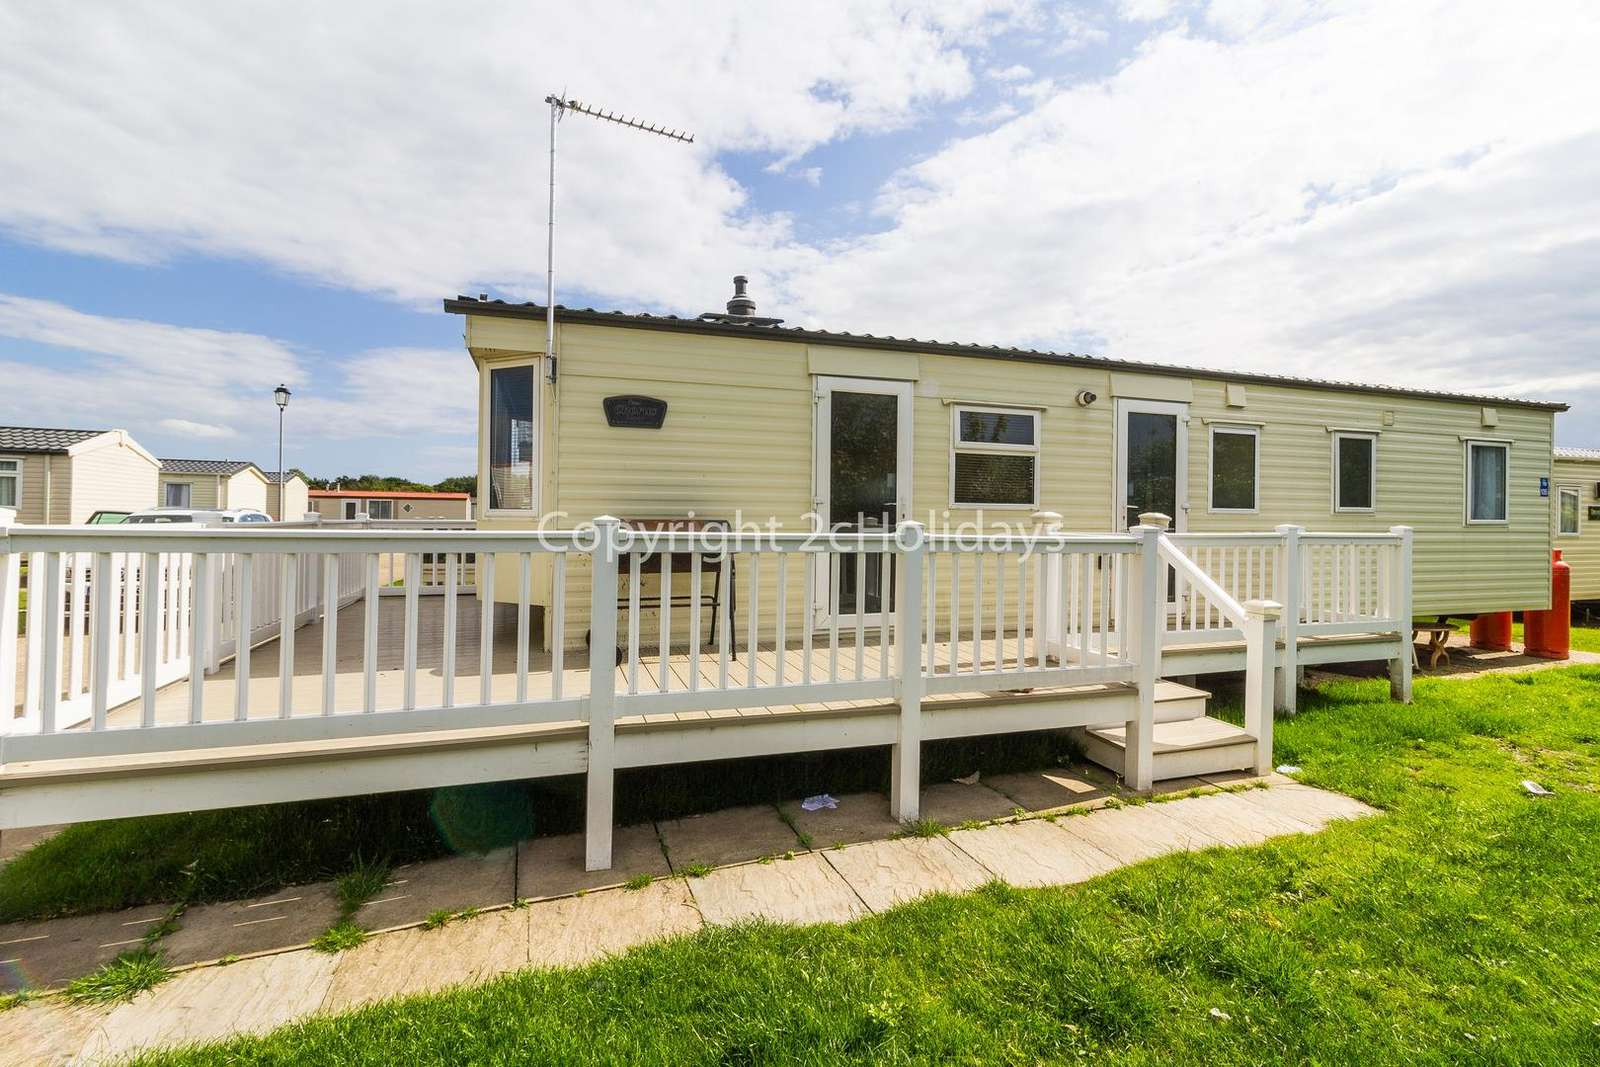 Only a short drive to the lovely seaside town Great Yarmouth1 - property